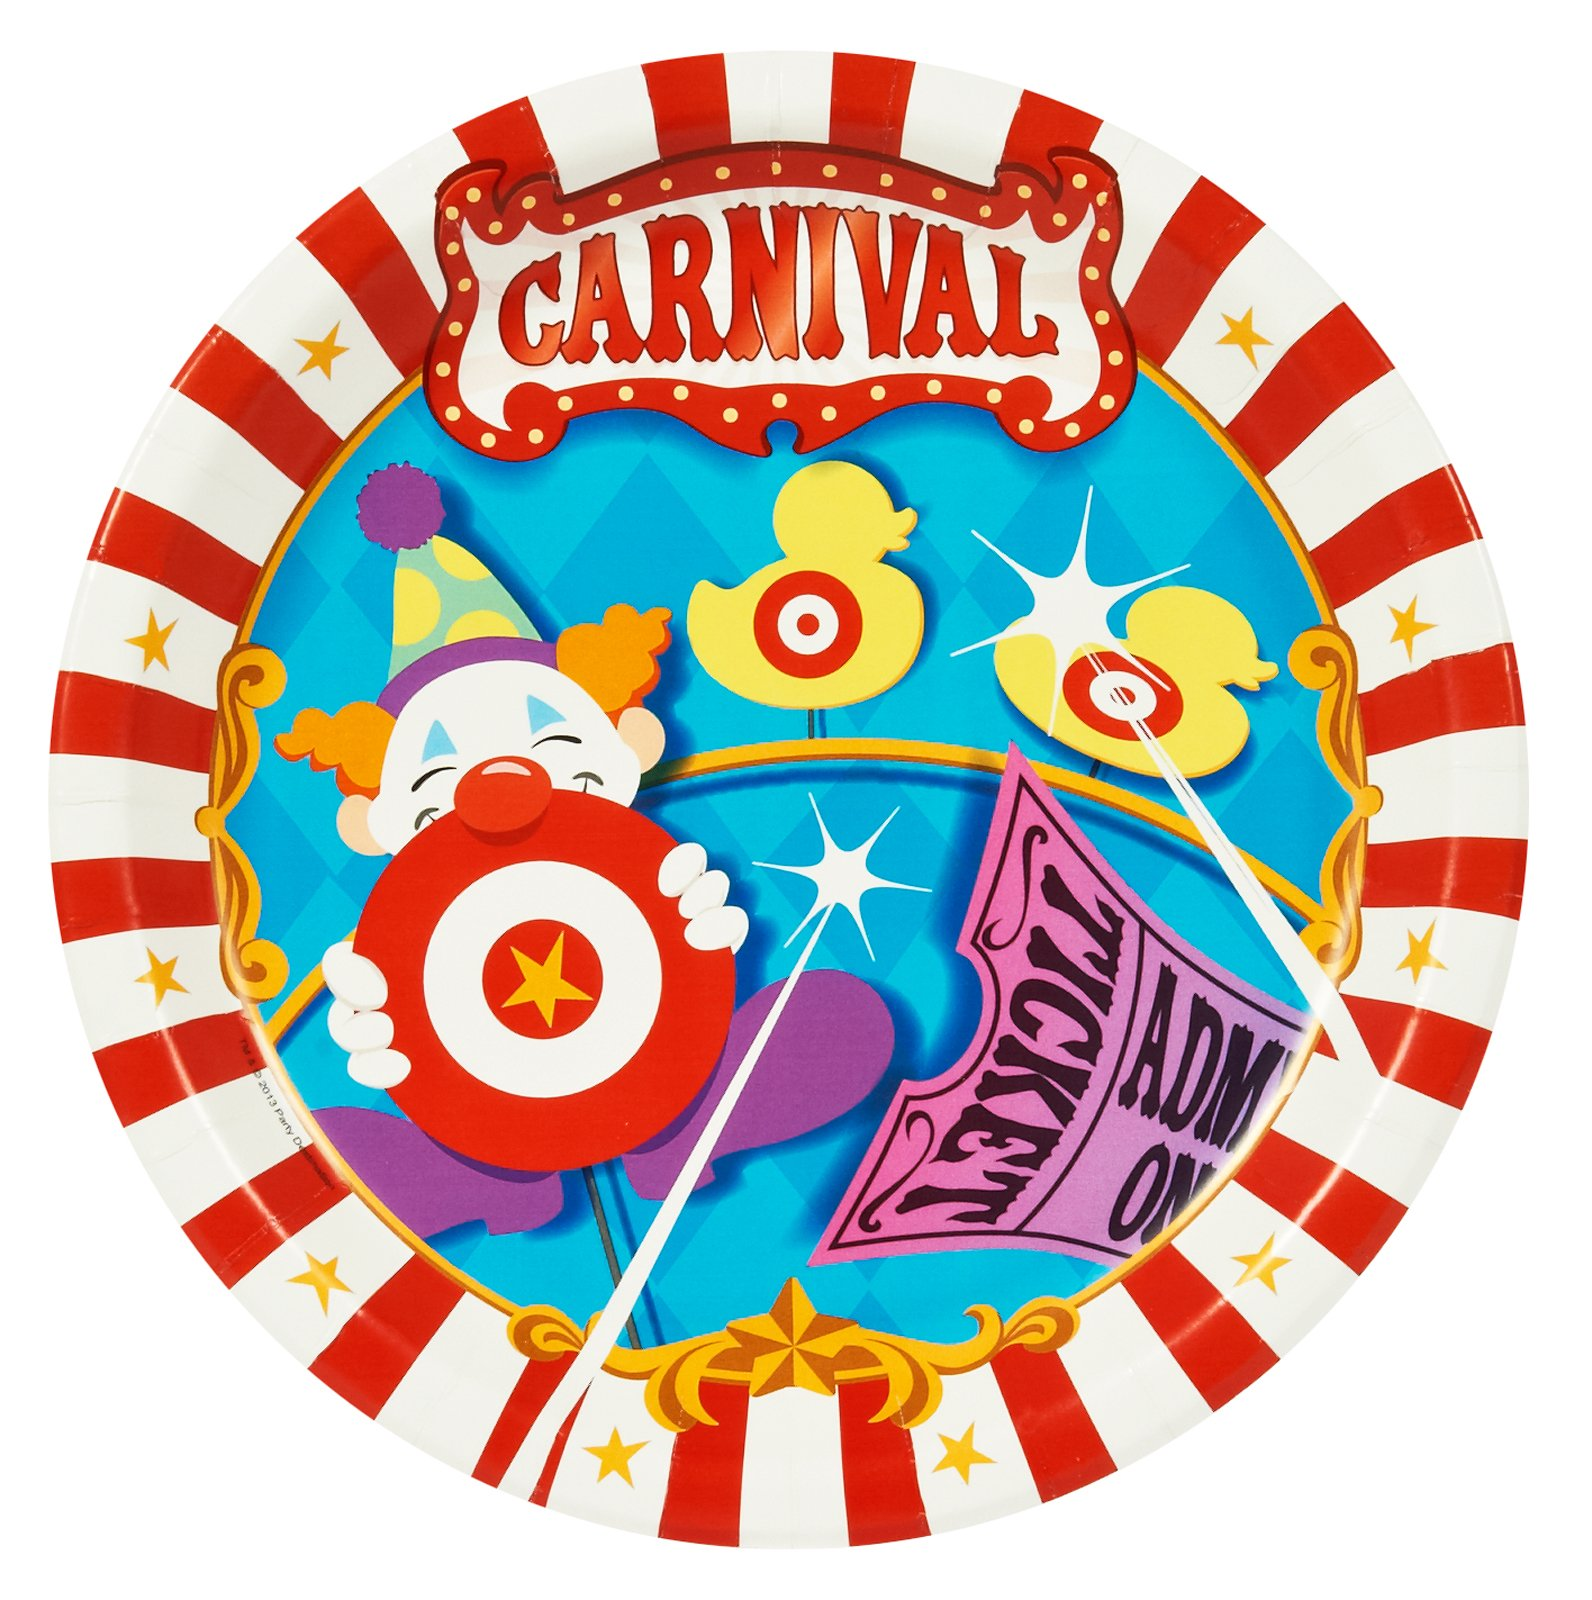 Carnival Games Clipart.